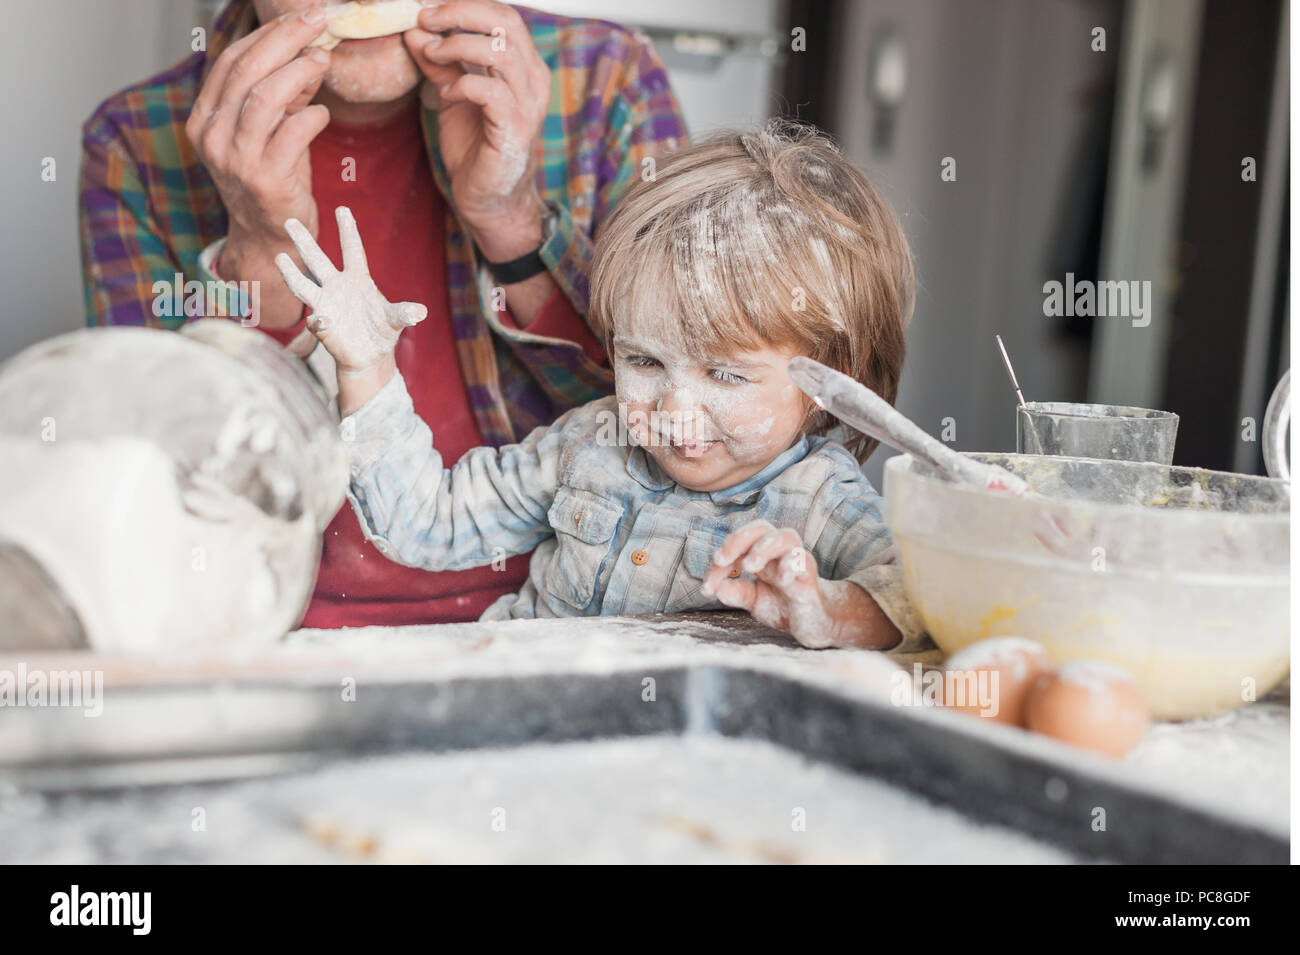 father and child having fun with flour at kitchen - Stock Image